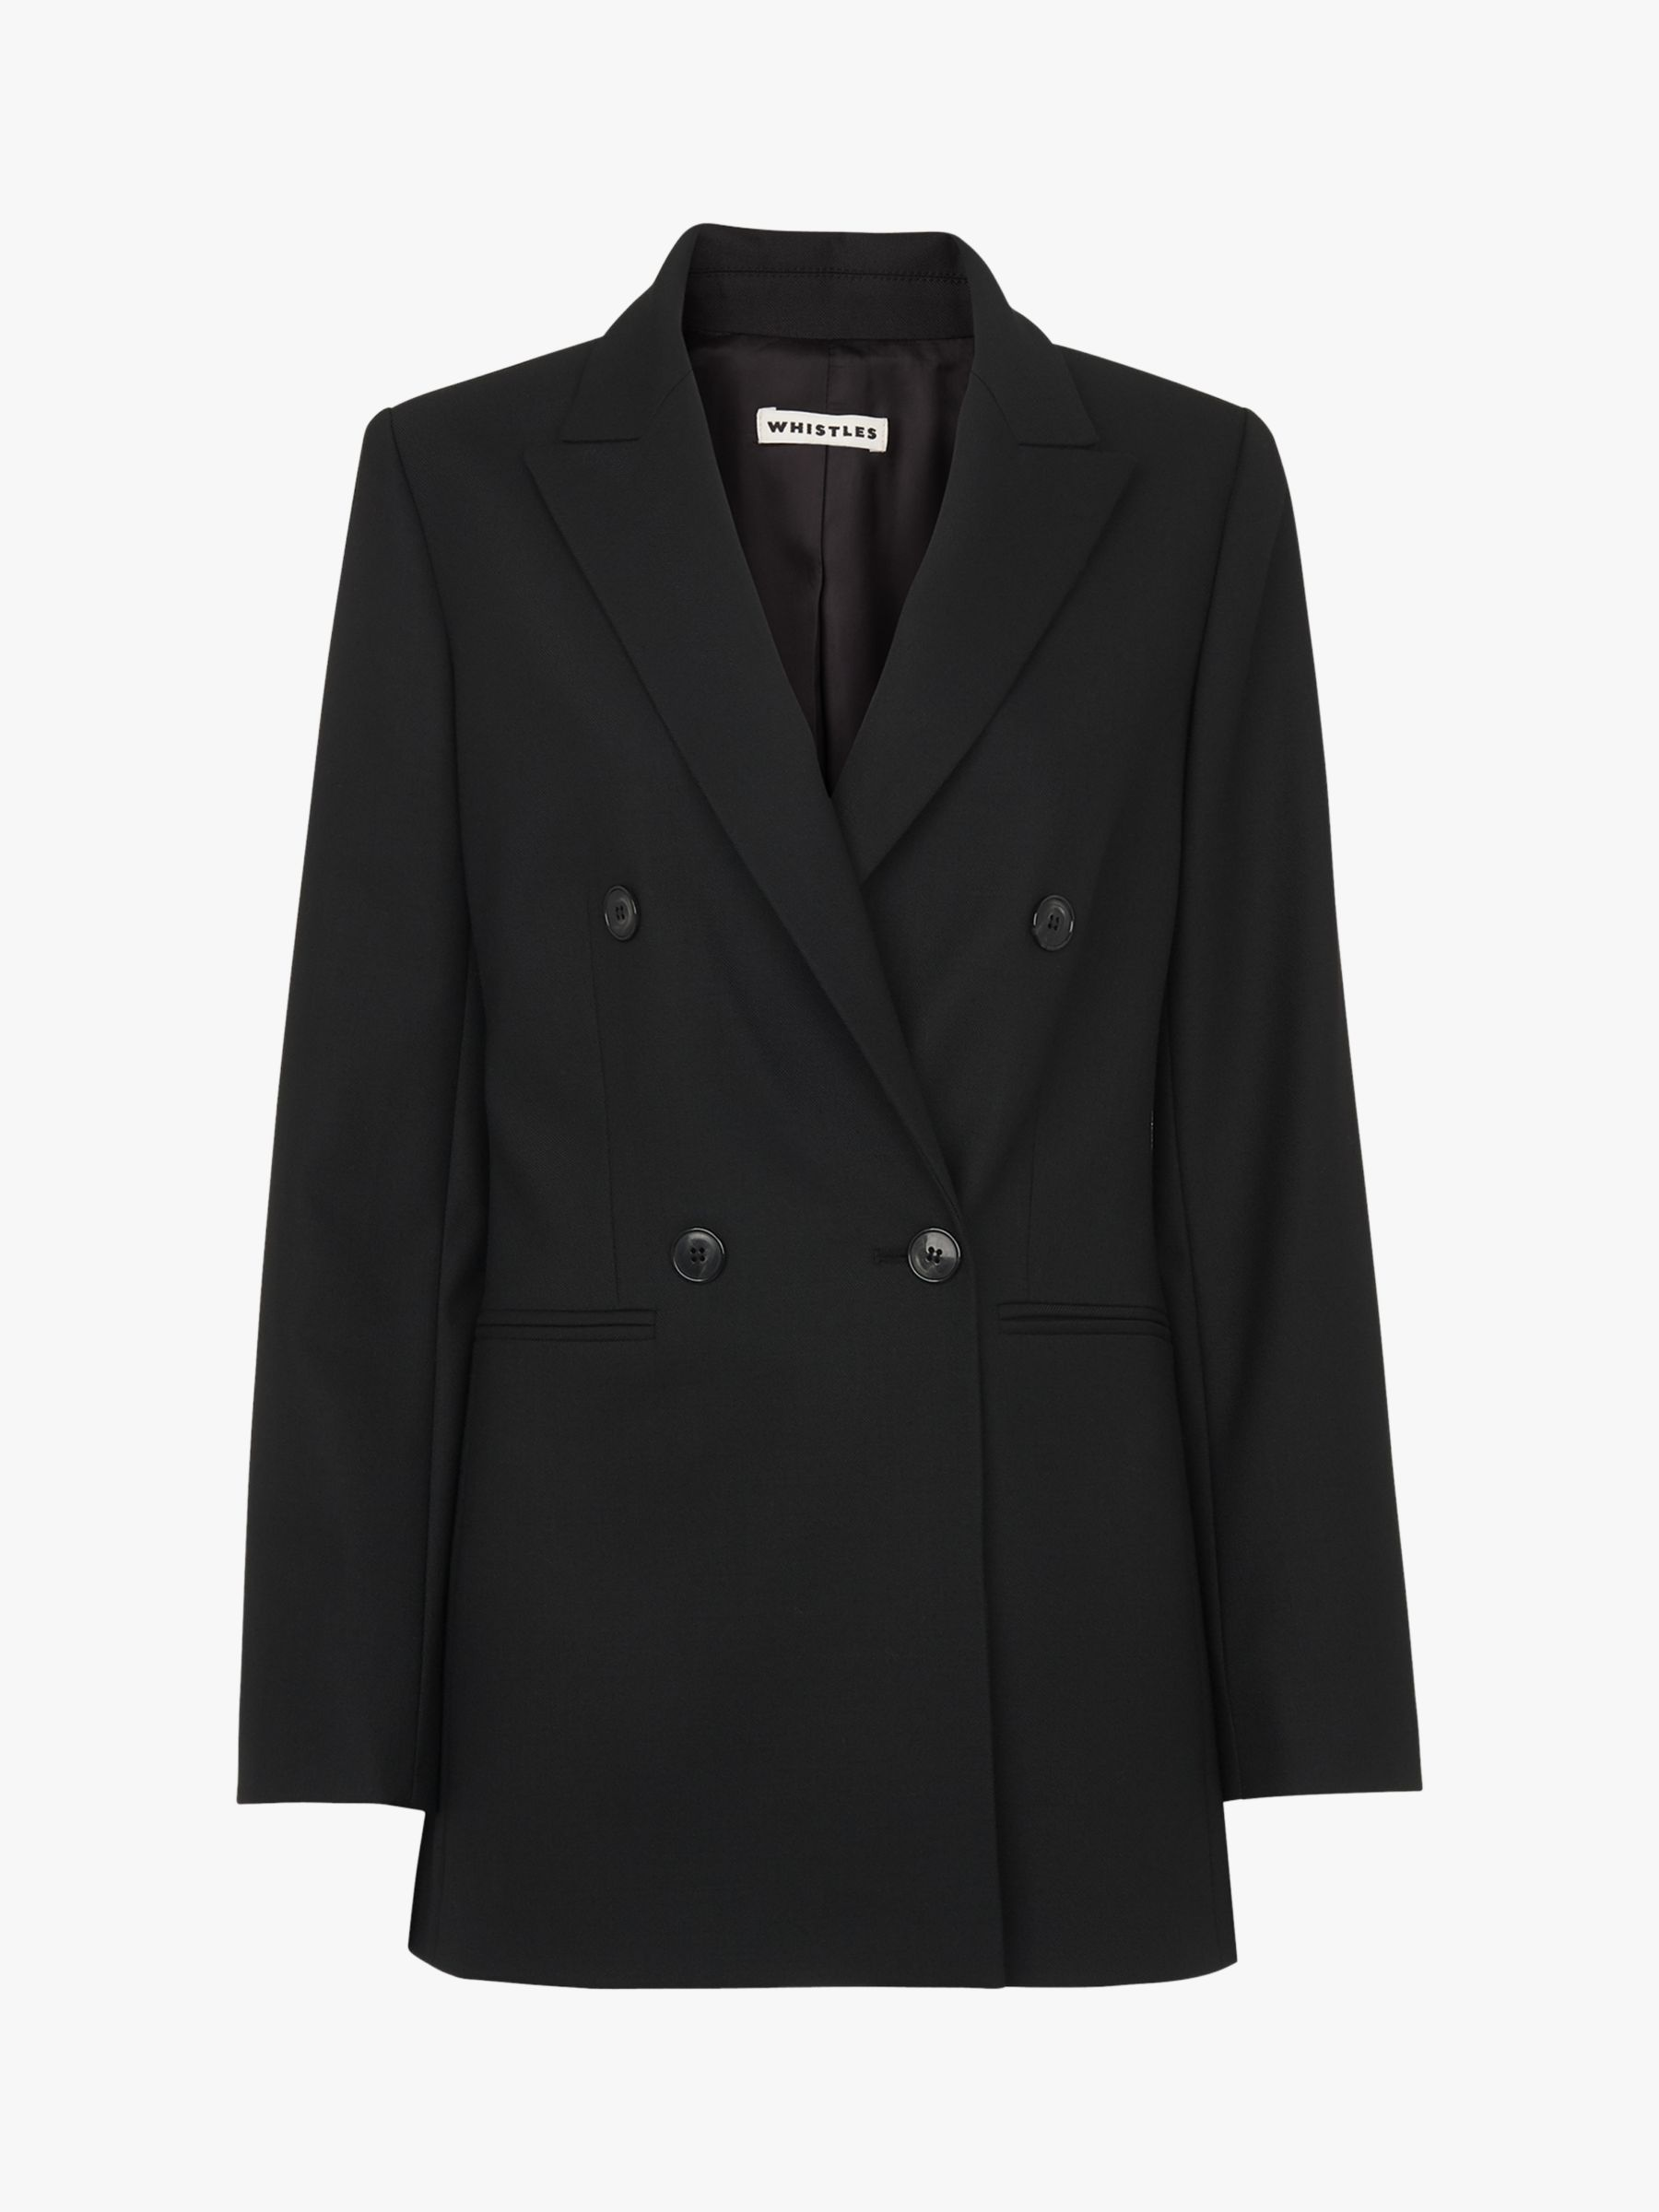 Buy Whistles Aliza Double Breasted Blazer Jacket, Black, 18 Online at johnlewis.com